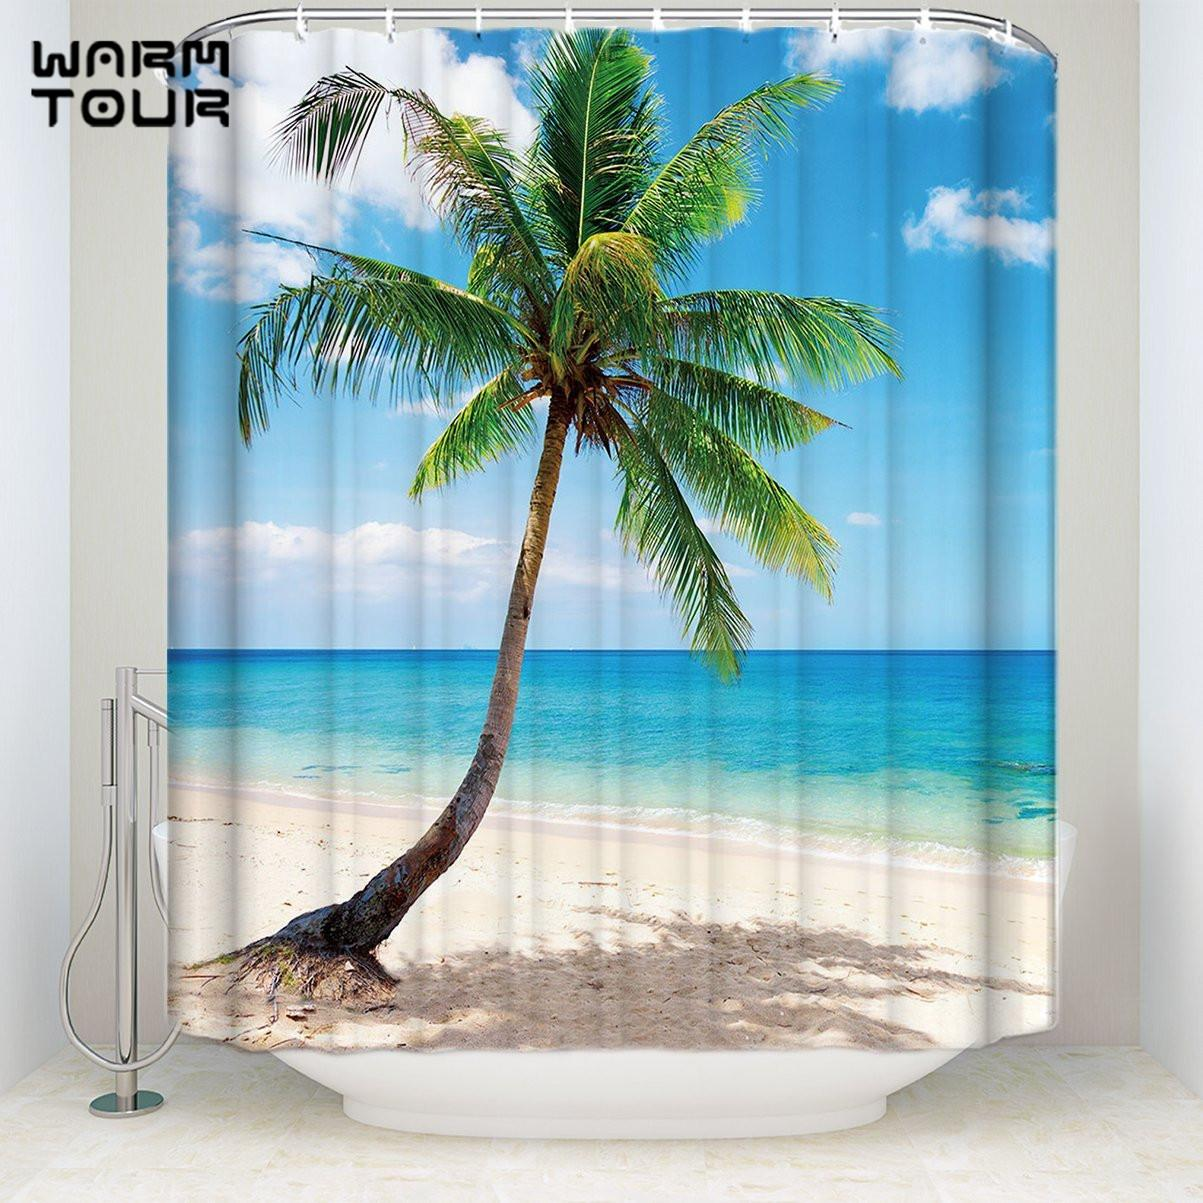 2019 Bath Shower Curtains 72 X 72 Tropical Coconut Palm Tree Sandy Beach  Mildew Resistant Bathroom Decor Sets With Hooks From Icelly, $27.06 |  DHgate.Com